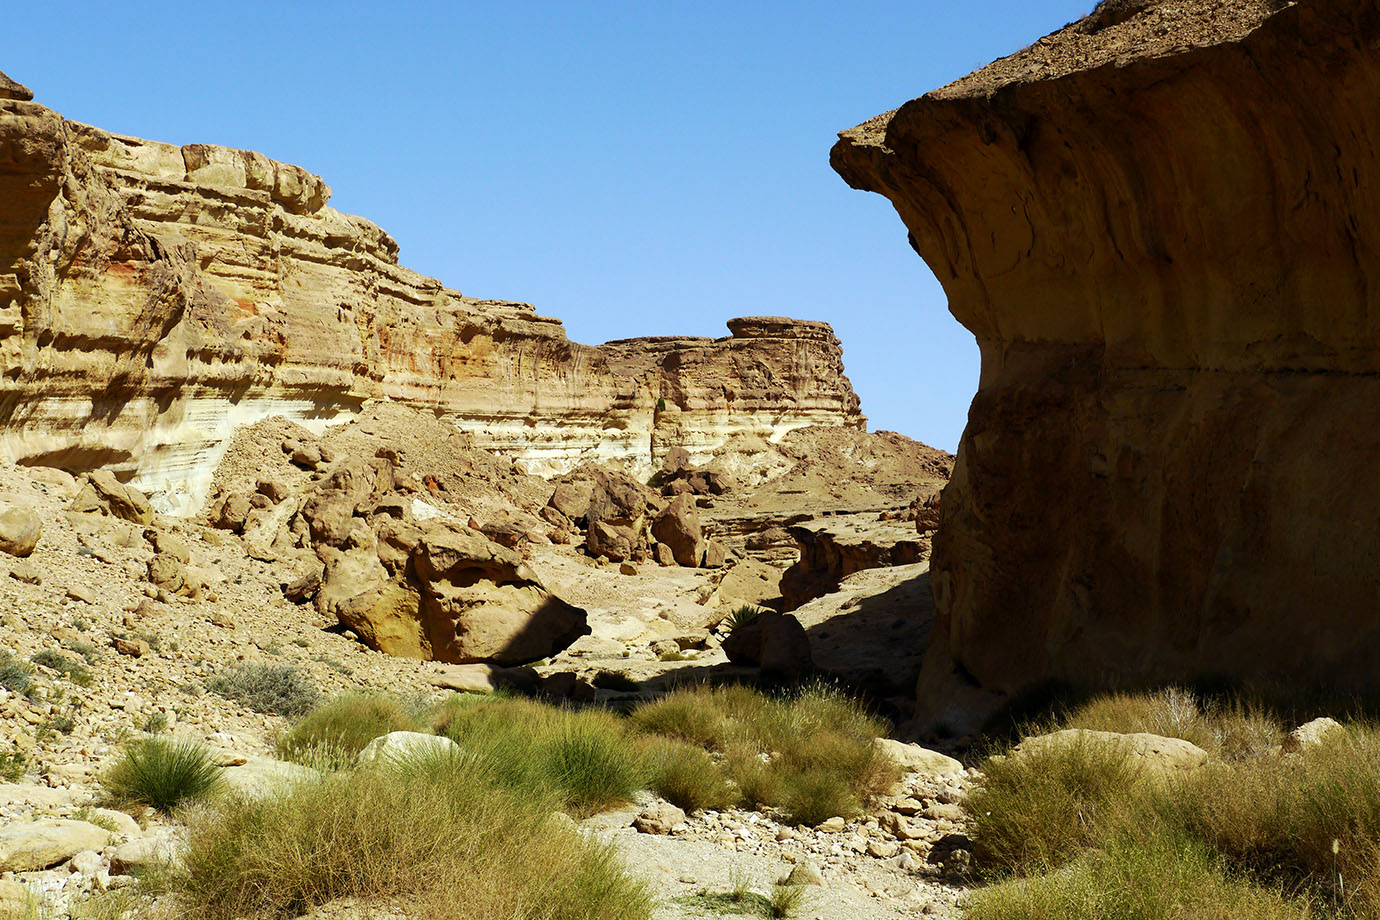 star-wars-episode-iv-a-new-hope-canyon